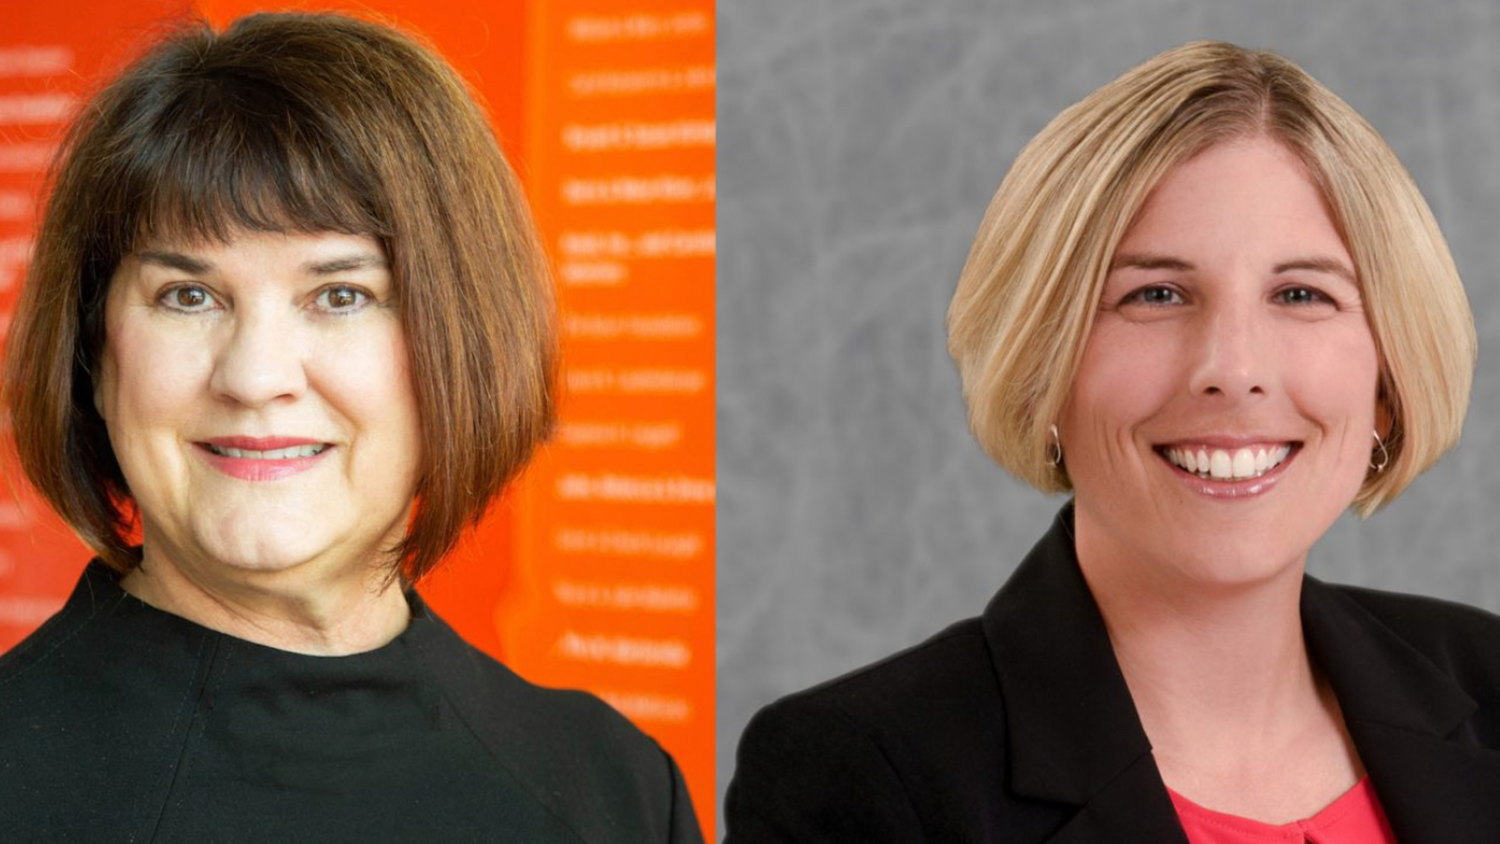 A side-by-side photo of Hiller Spires, Ph.D., and Erin Krupa, Ph.D.